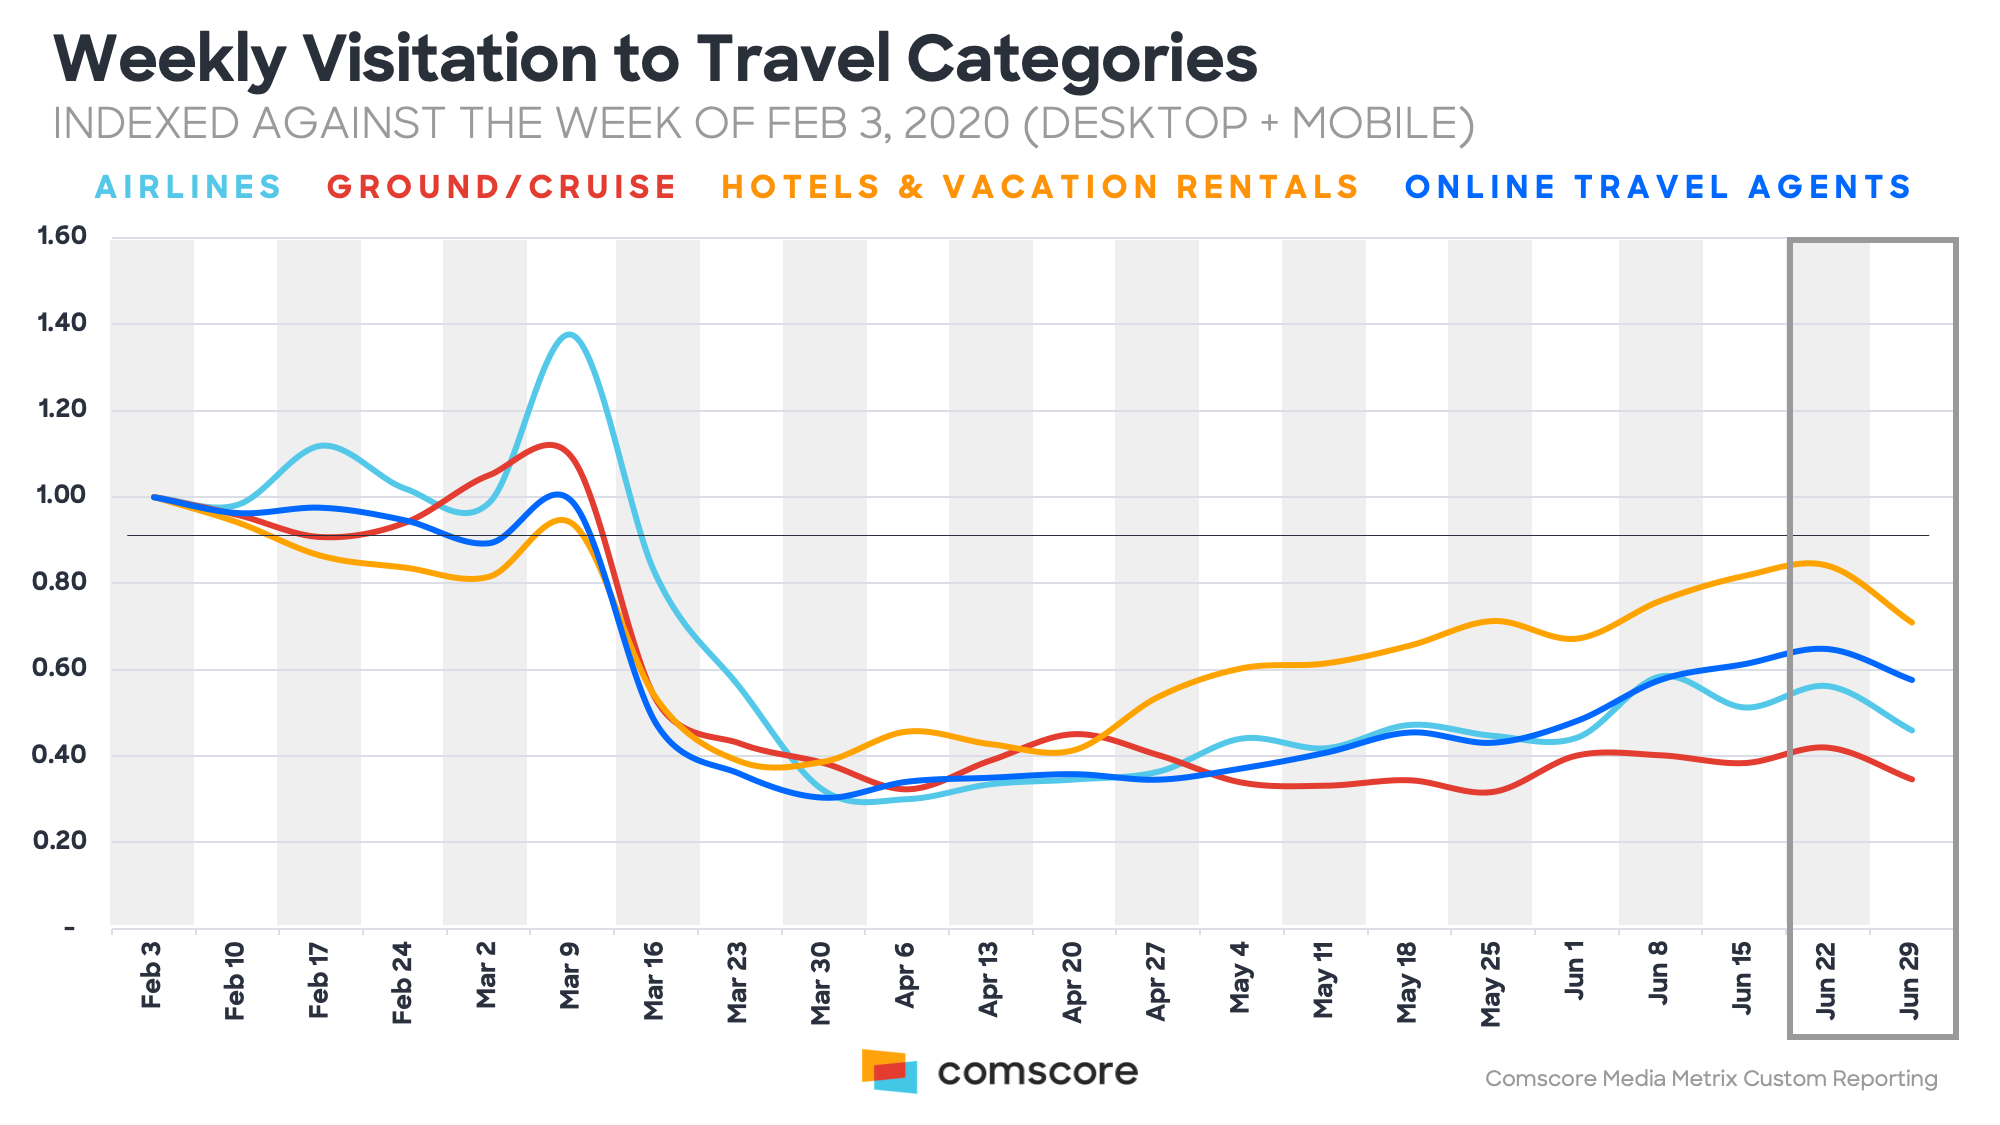 Weekly Visitation to Travel Categories